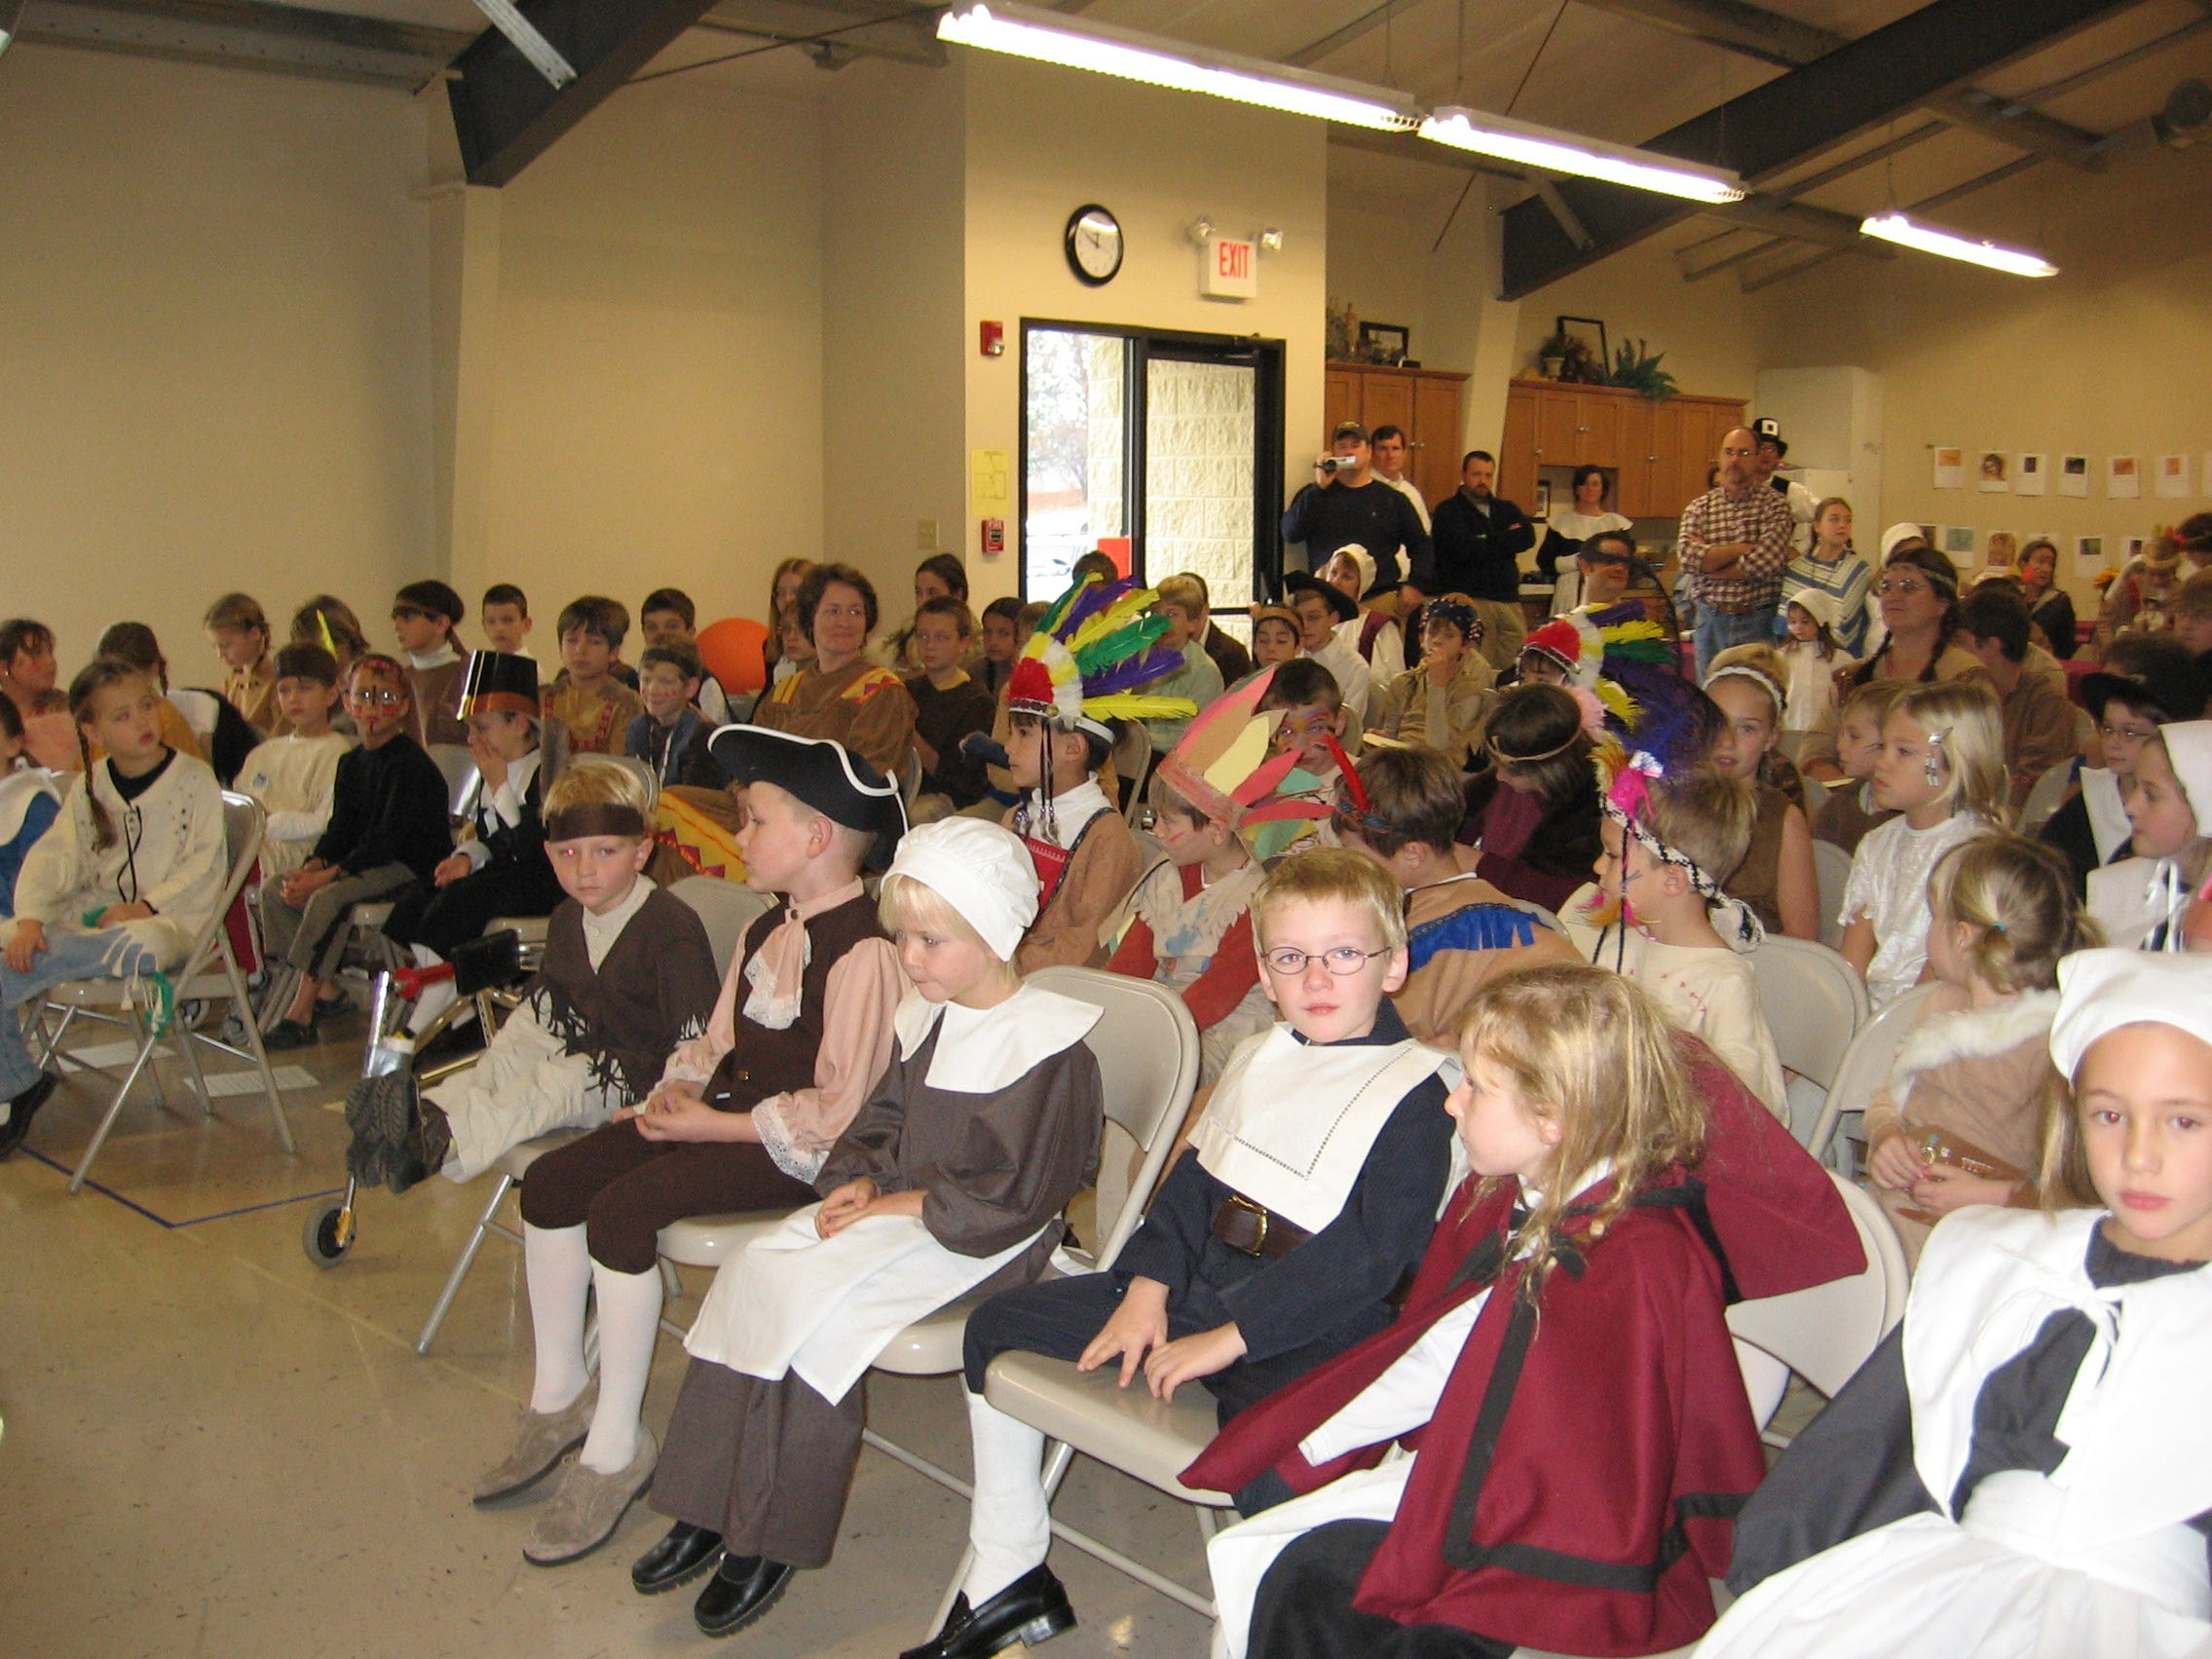 Rows upon rows of little pilgrims and Indians wait for a Thanksgiving presentation at Paideia Academy Nov. 19.